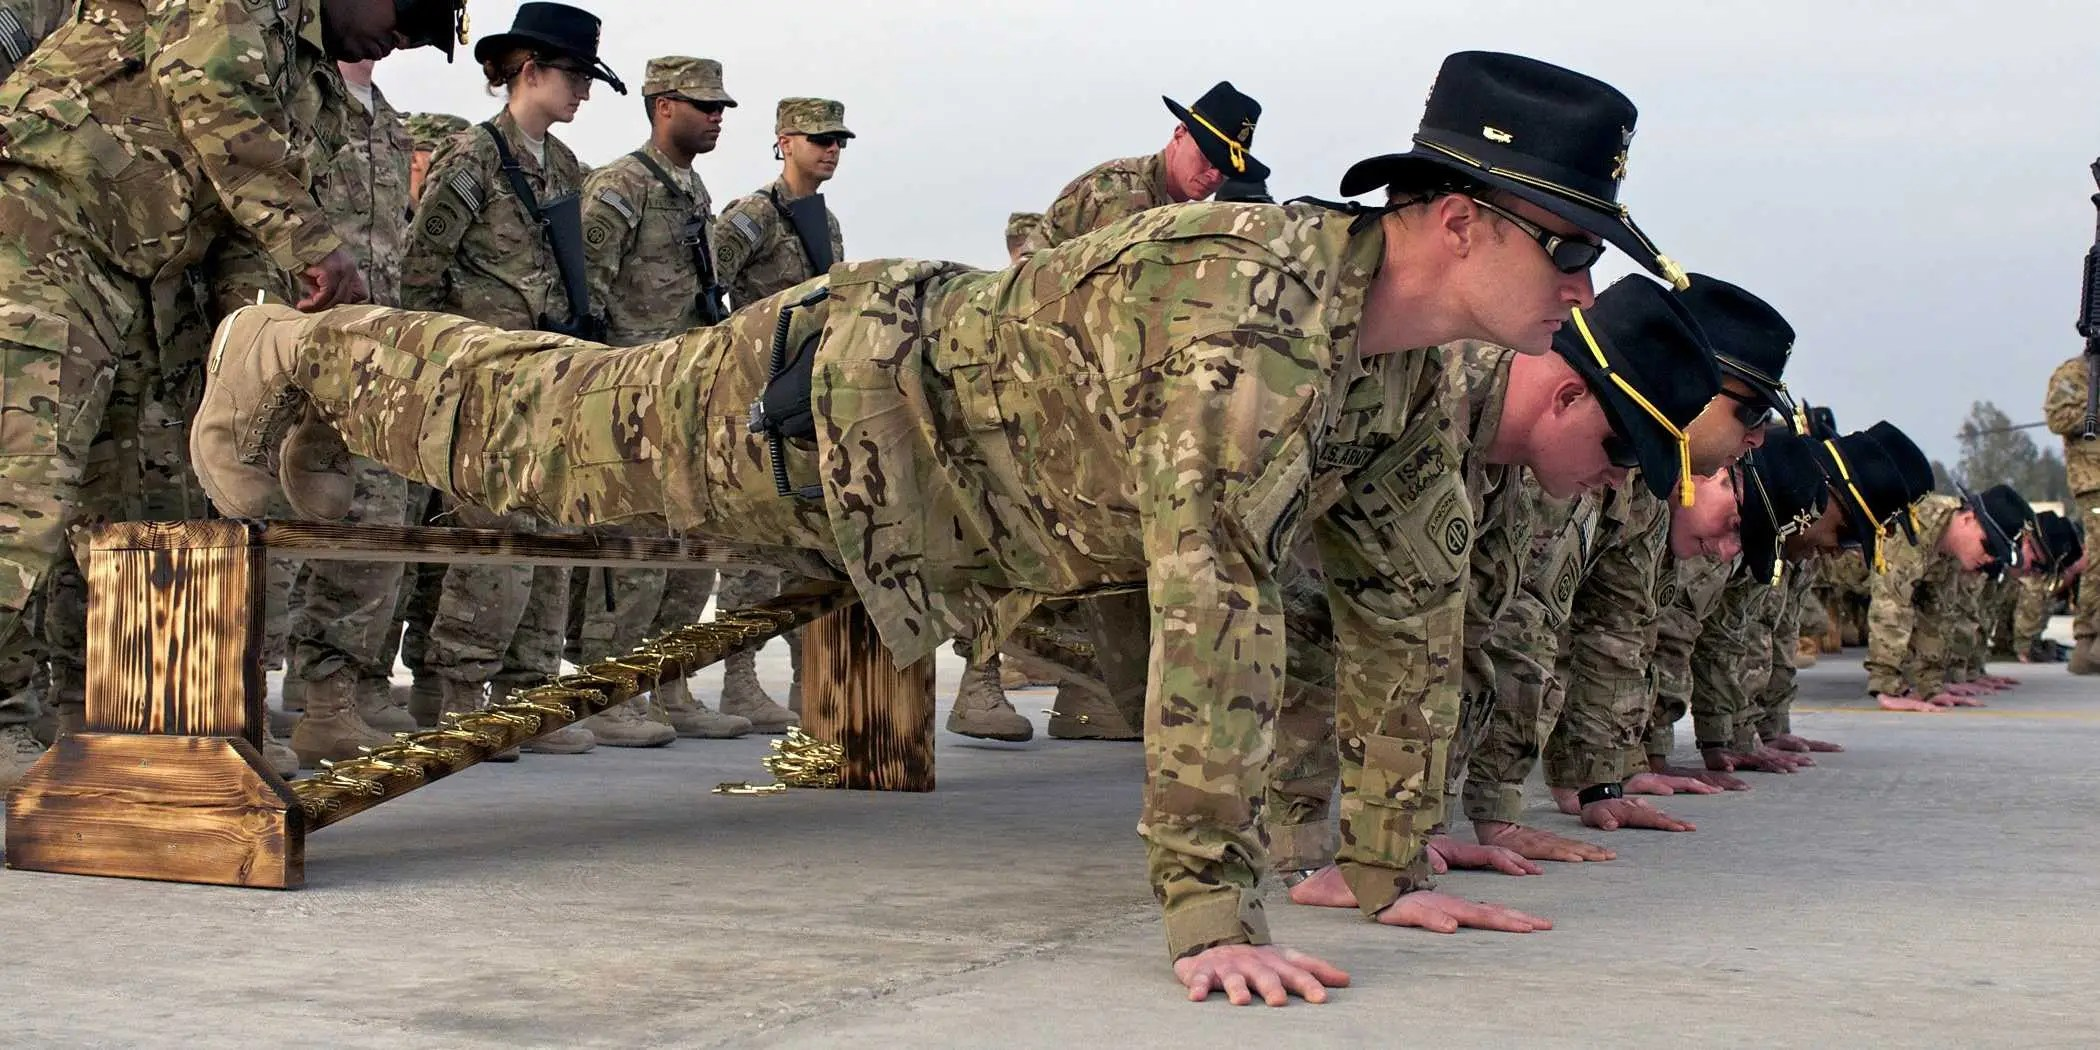 us army best photos 2012, gold spurs